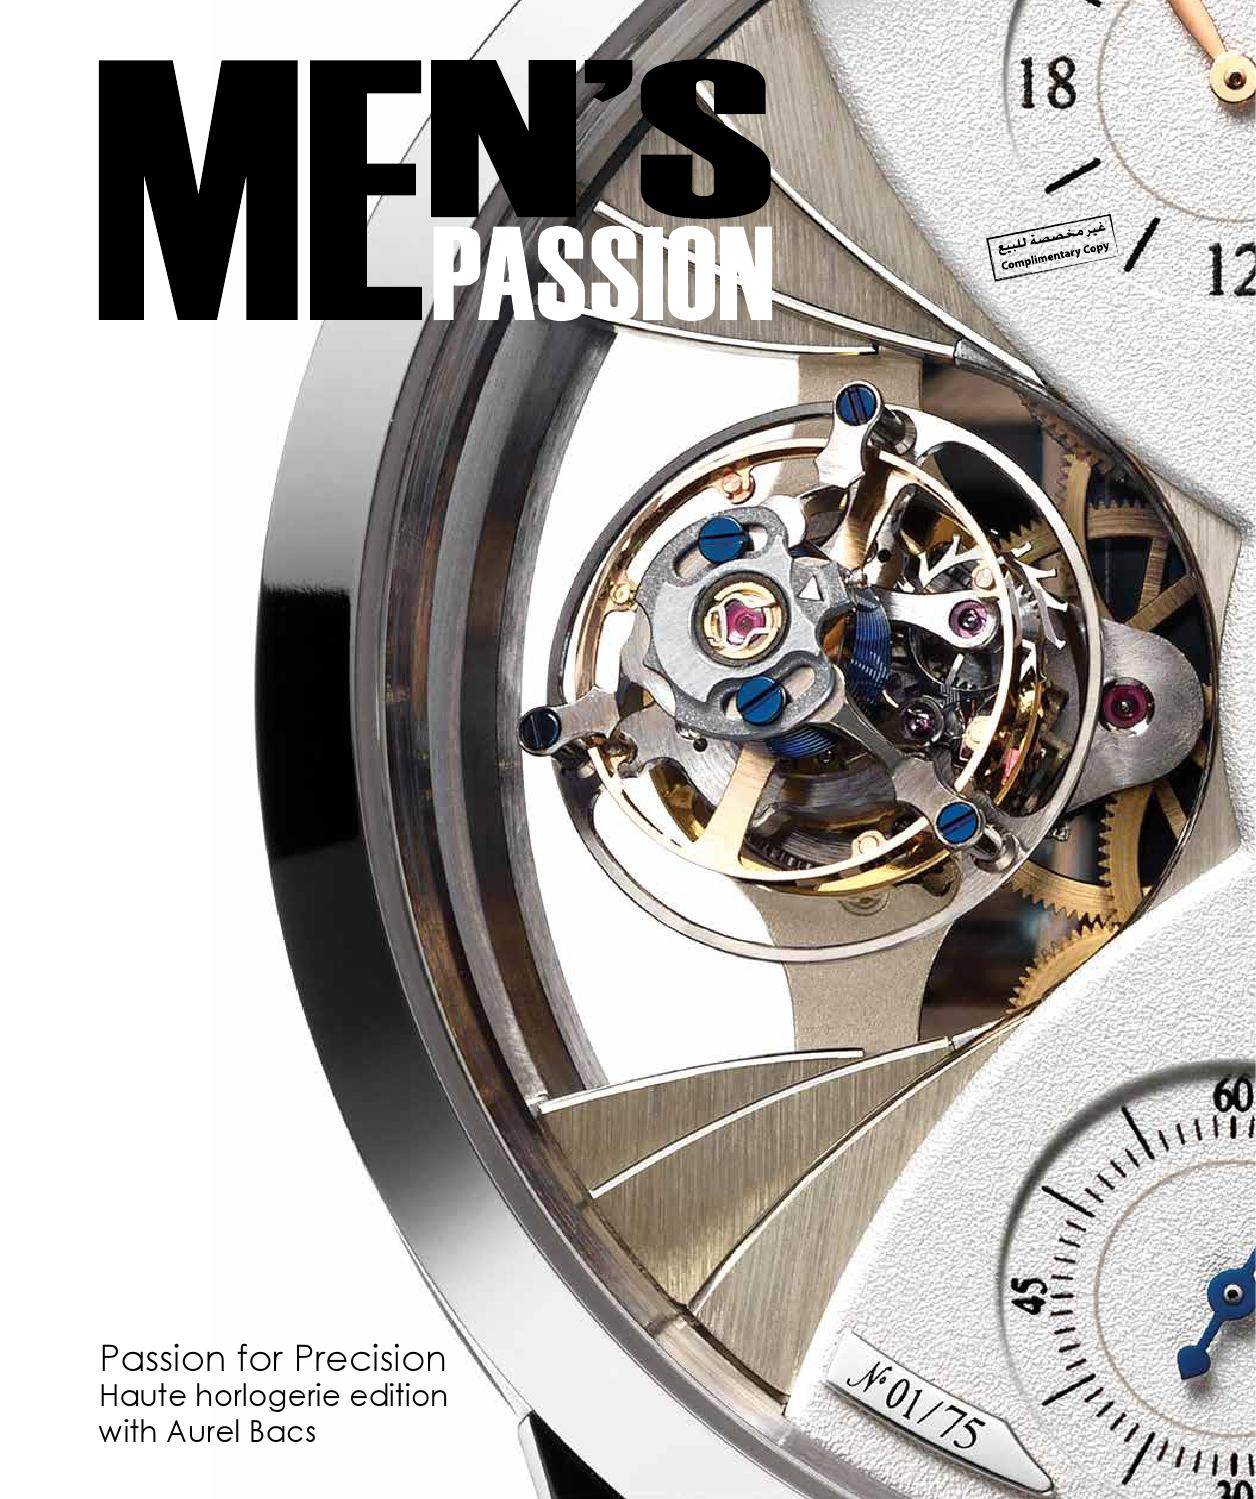 815d43925 Men's Passion #68 - May 2015 by Men's Passion Magazine - issuu